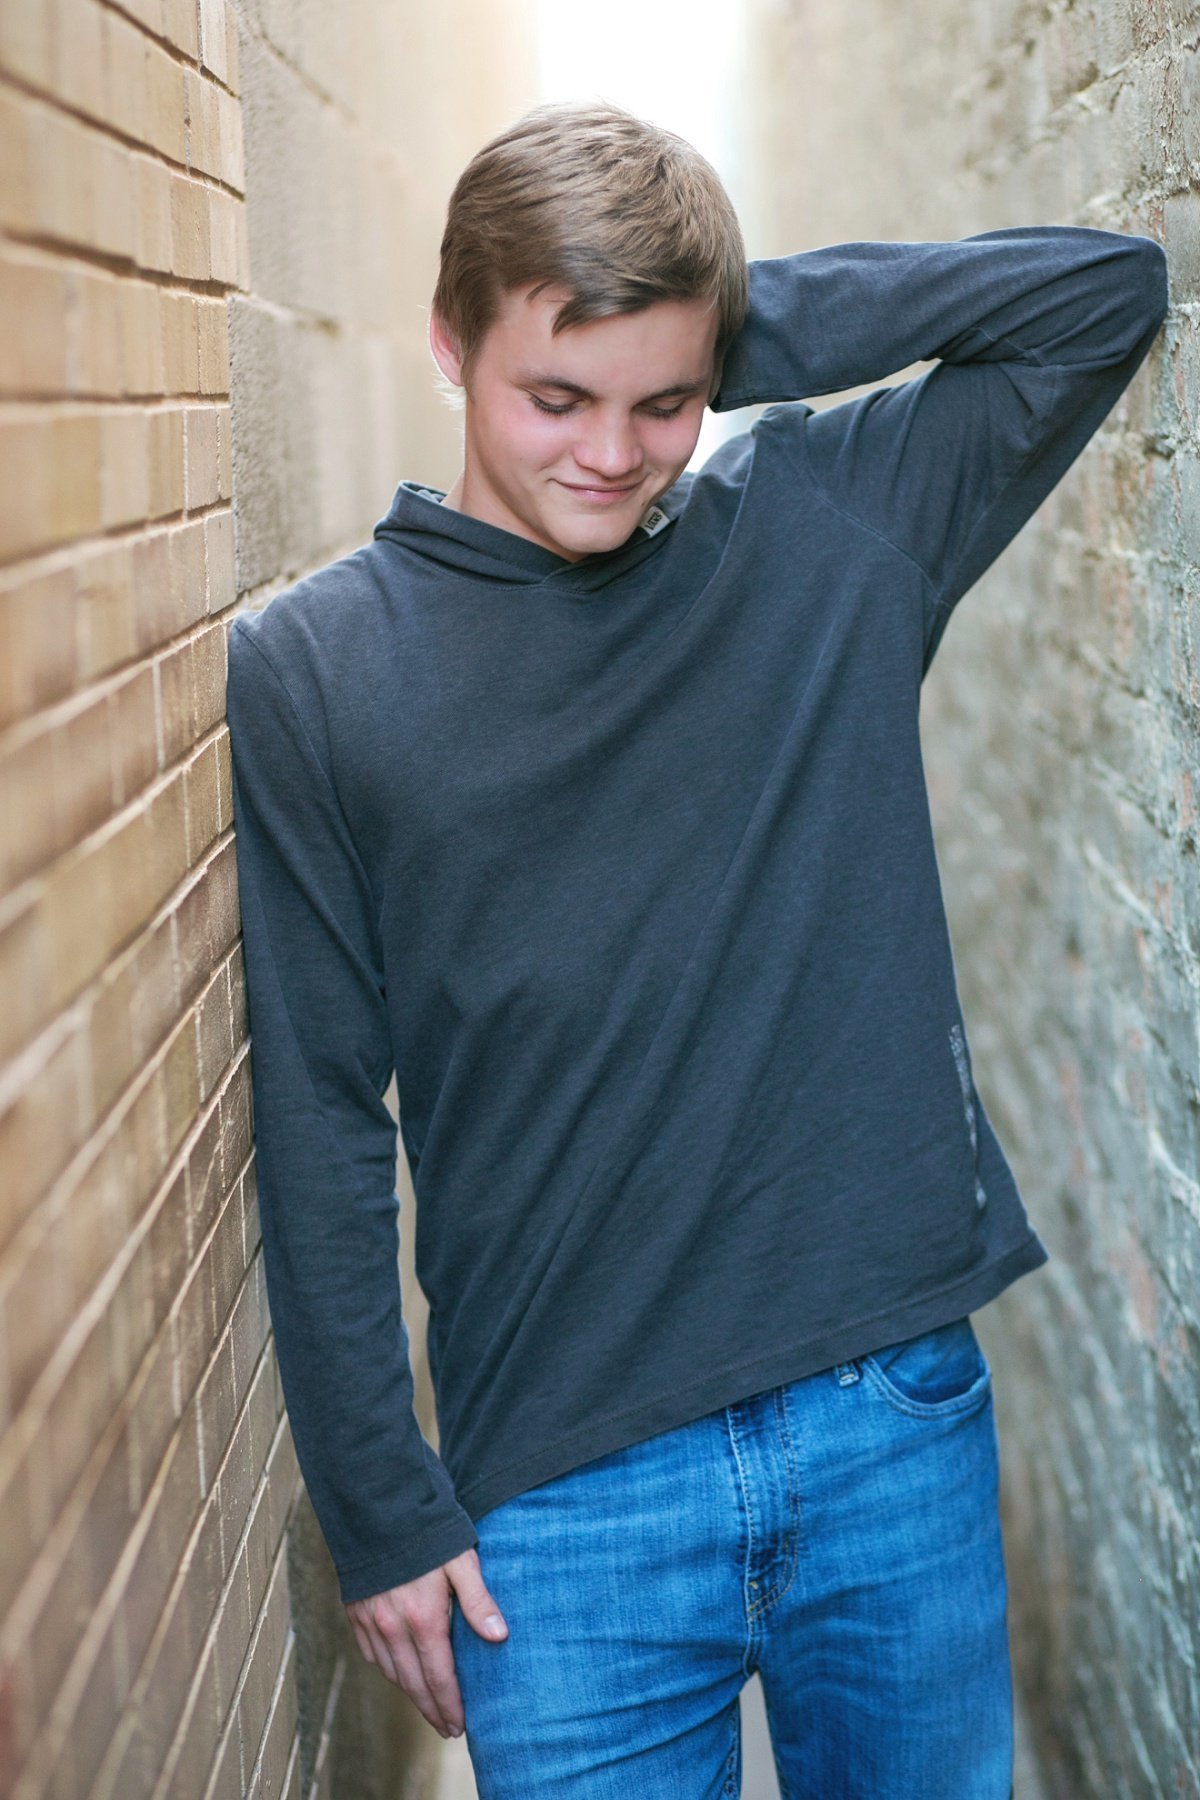 Inidividuals Portraits Senior Pictures Headshots Professional Photography Session Graduation Colorado Springs (92)